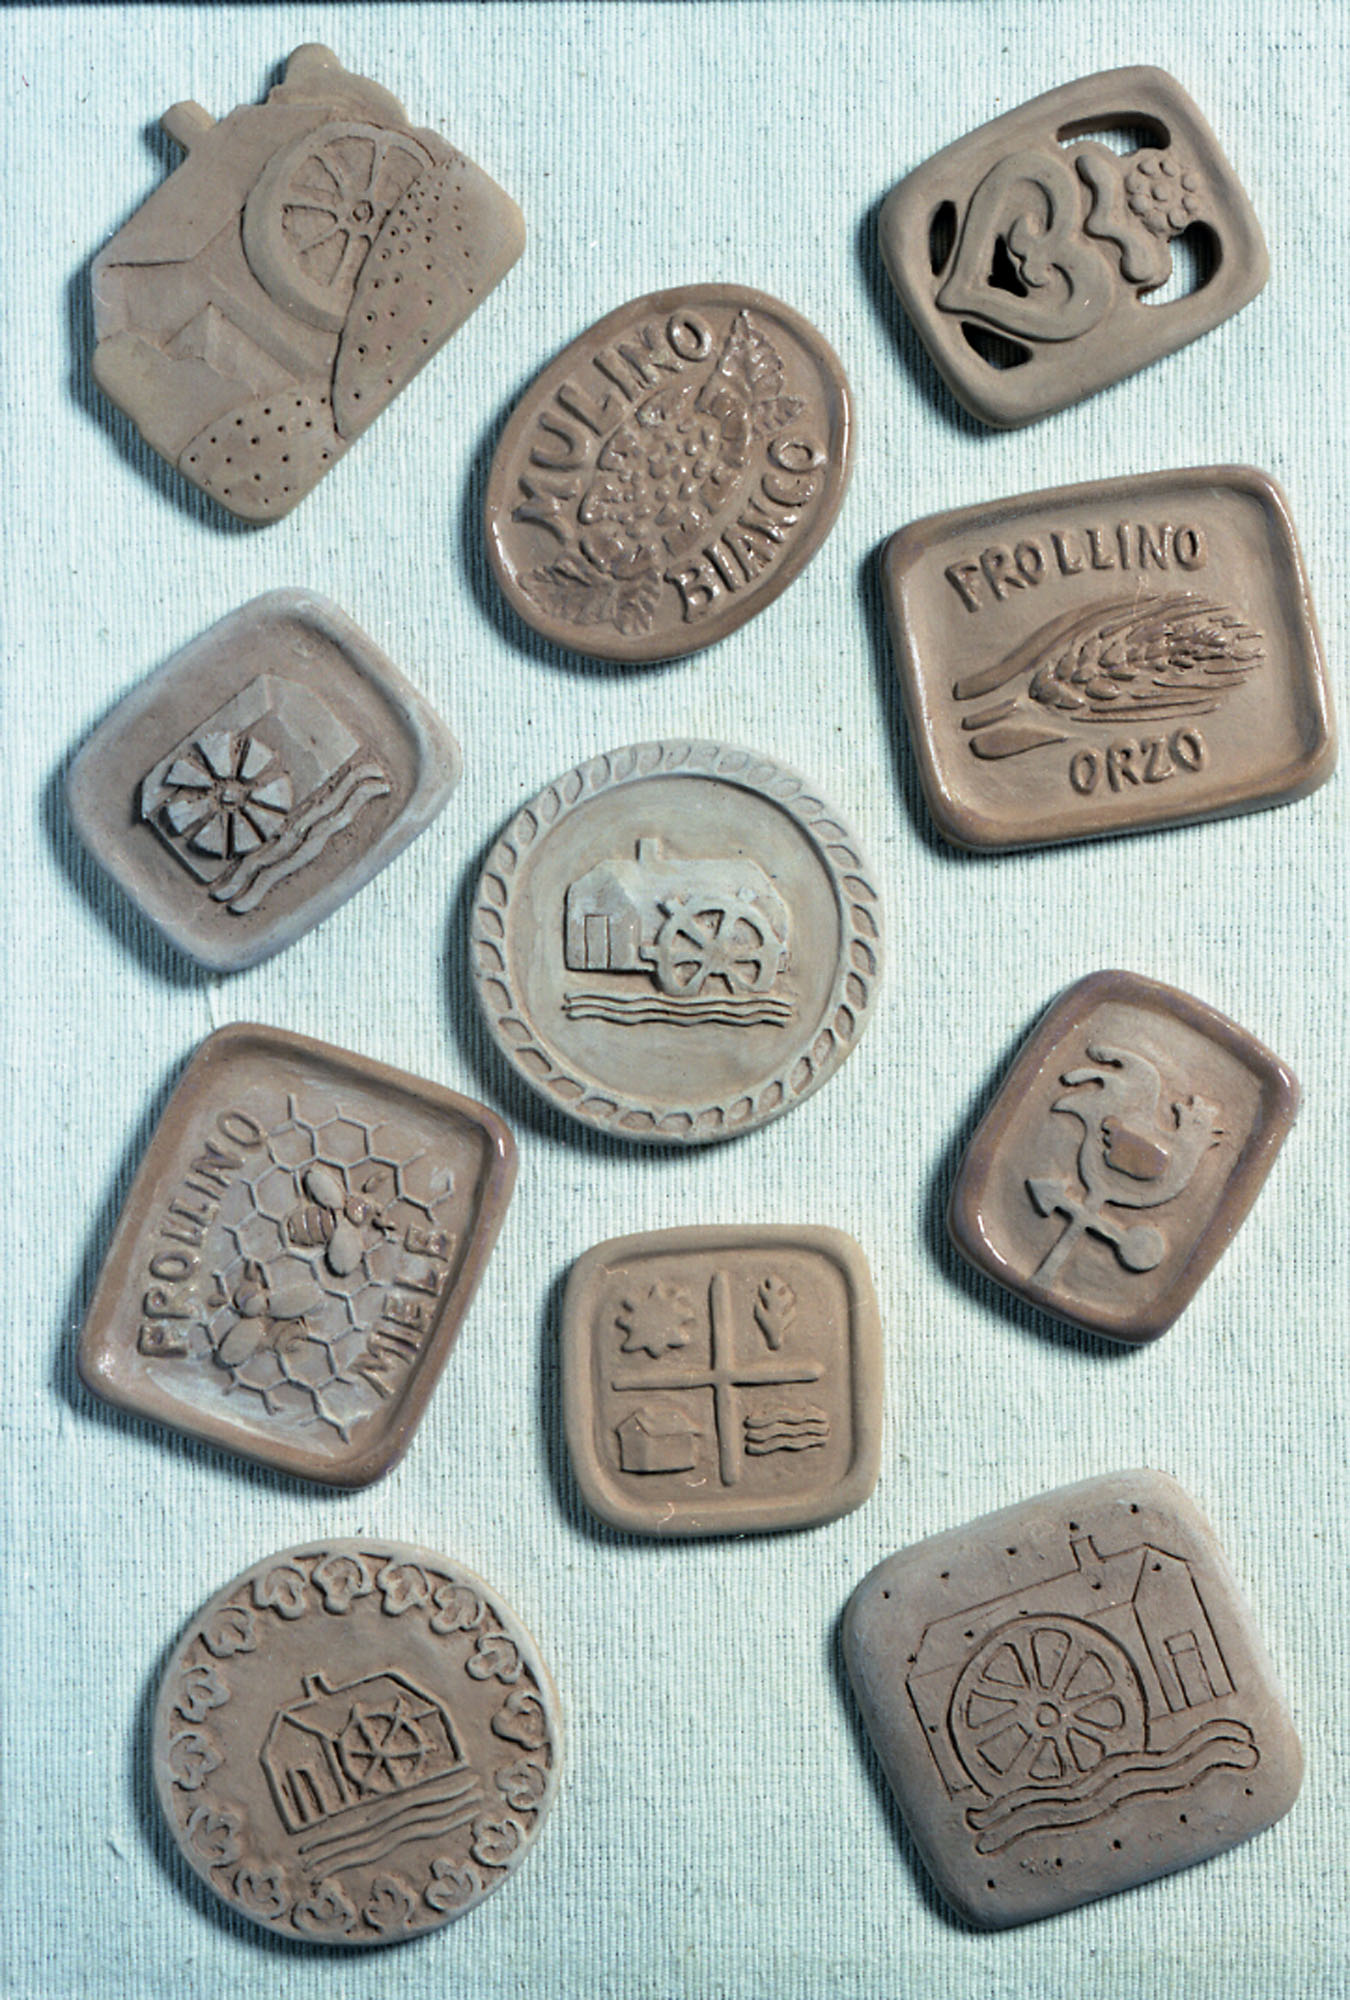 Crock molds for testing the shapes of the first Mulino Bianco biscuits